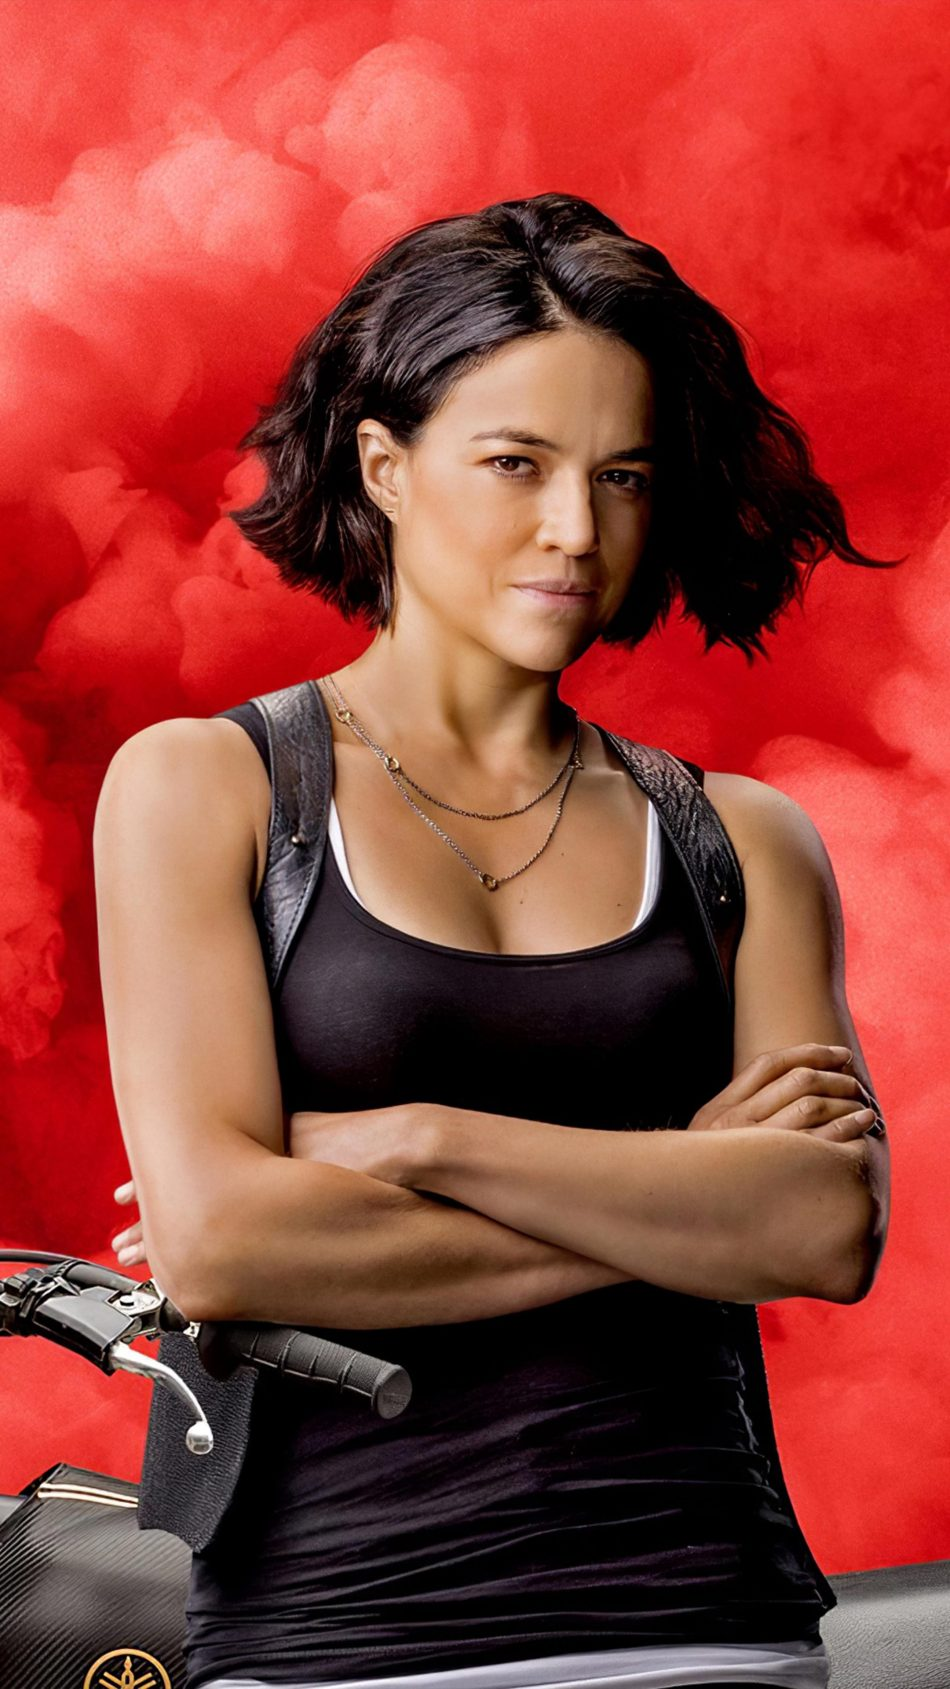 Michelle Rodriguez In F9 The Fast Saga 4K Ultra HD Mobile Wallpaper